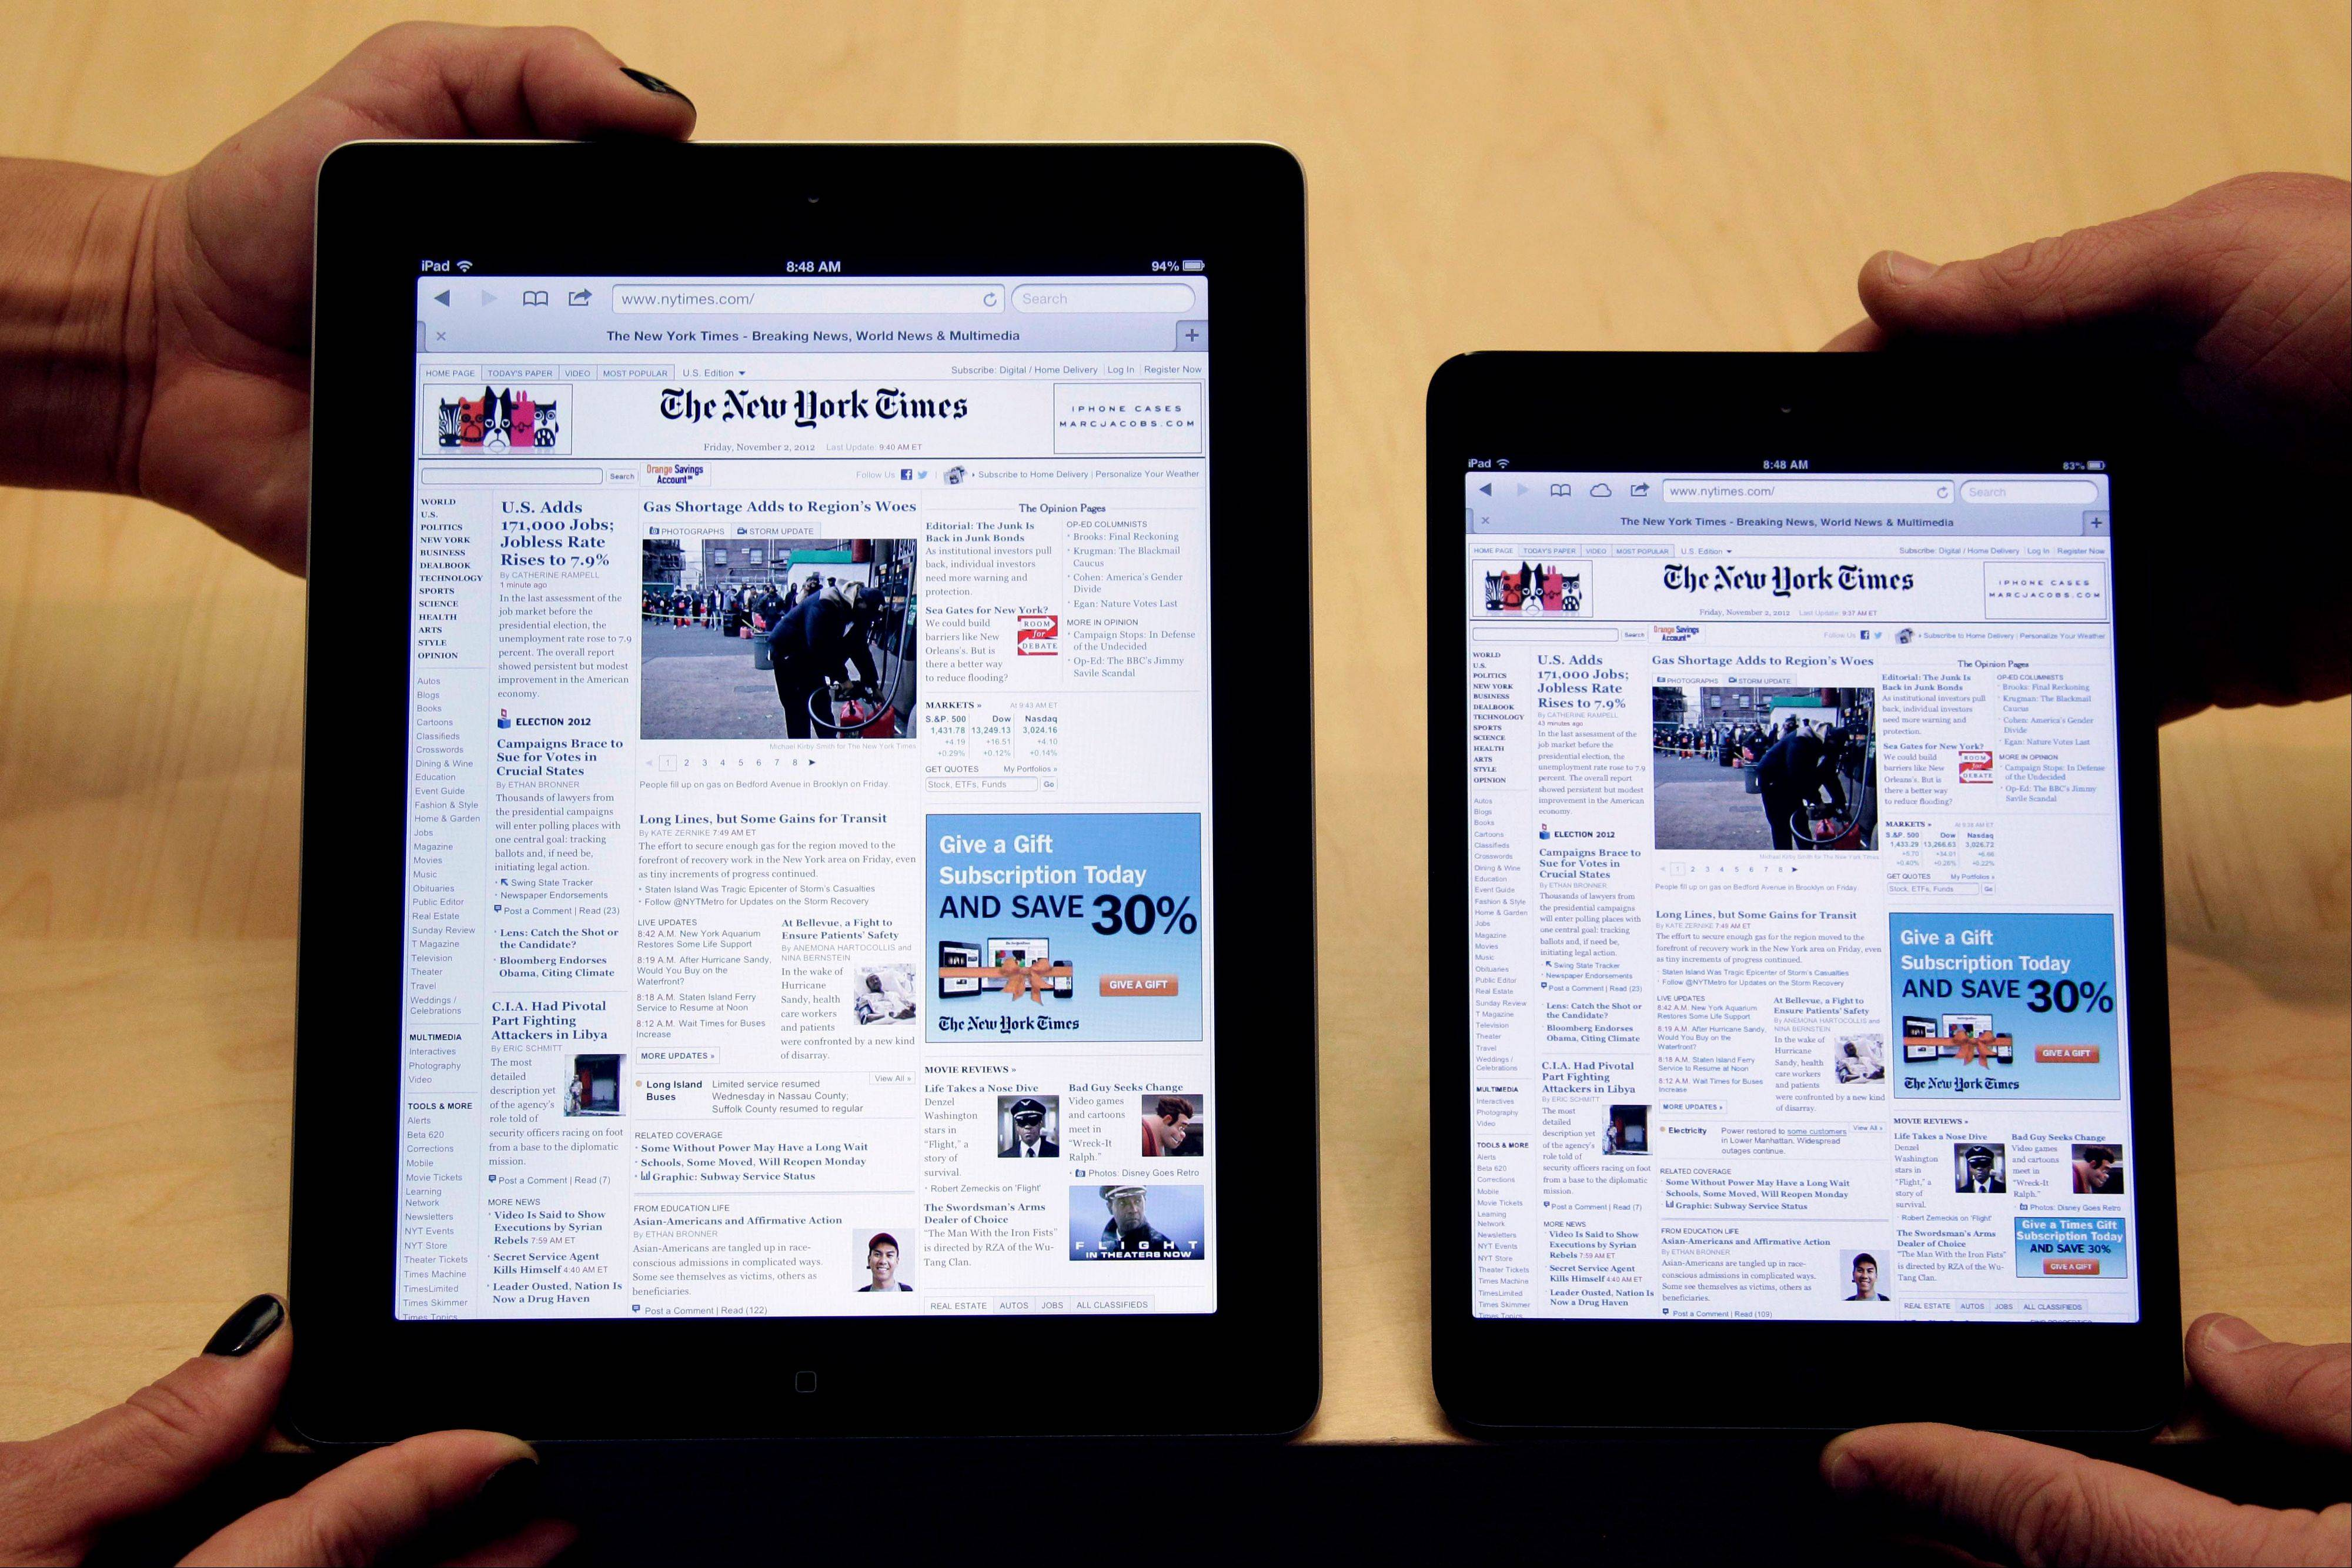 Employees hold a new full size Apple iPad 4th generation, left, next to new Apple iPad mini at the Apple store on Michigan Ave. in Chicago. Farhad Manjoo wants to know why Apple hasn't designed MacBooks to respond to touch like iPads.